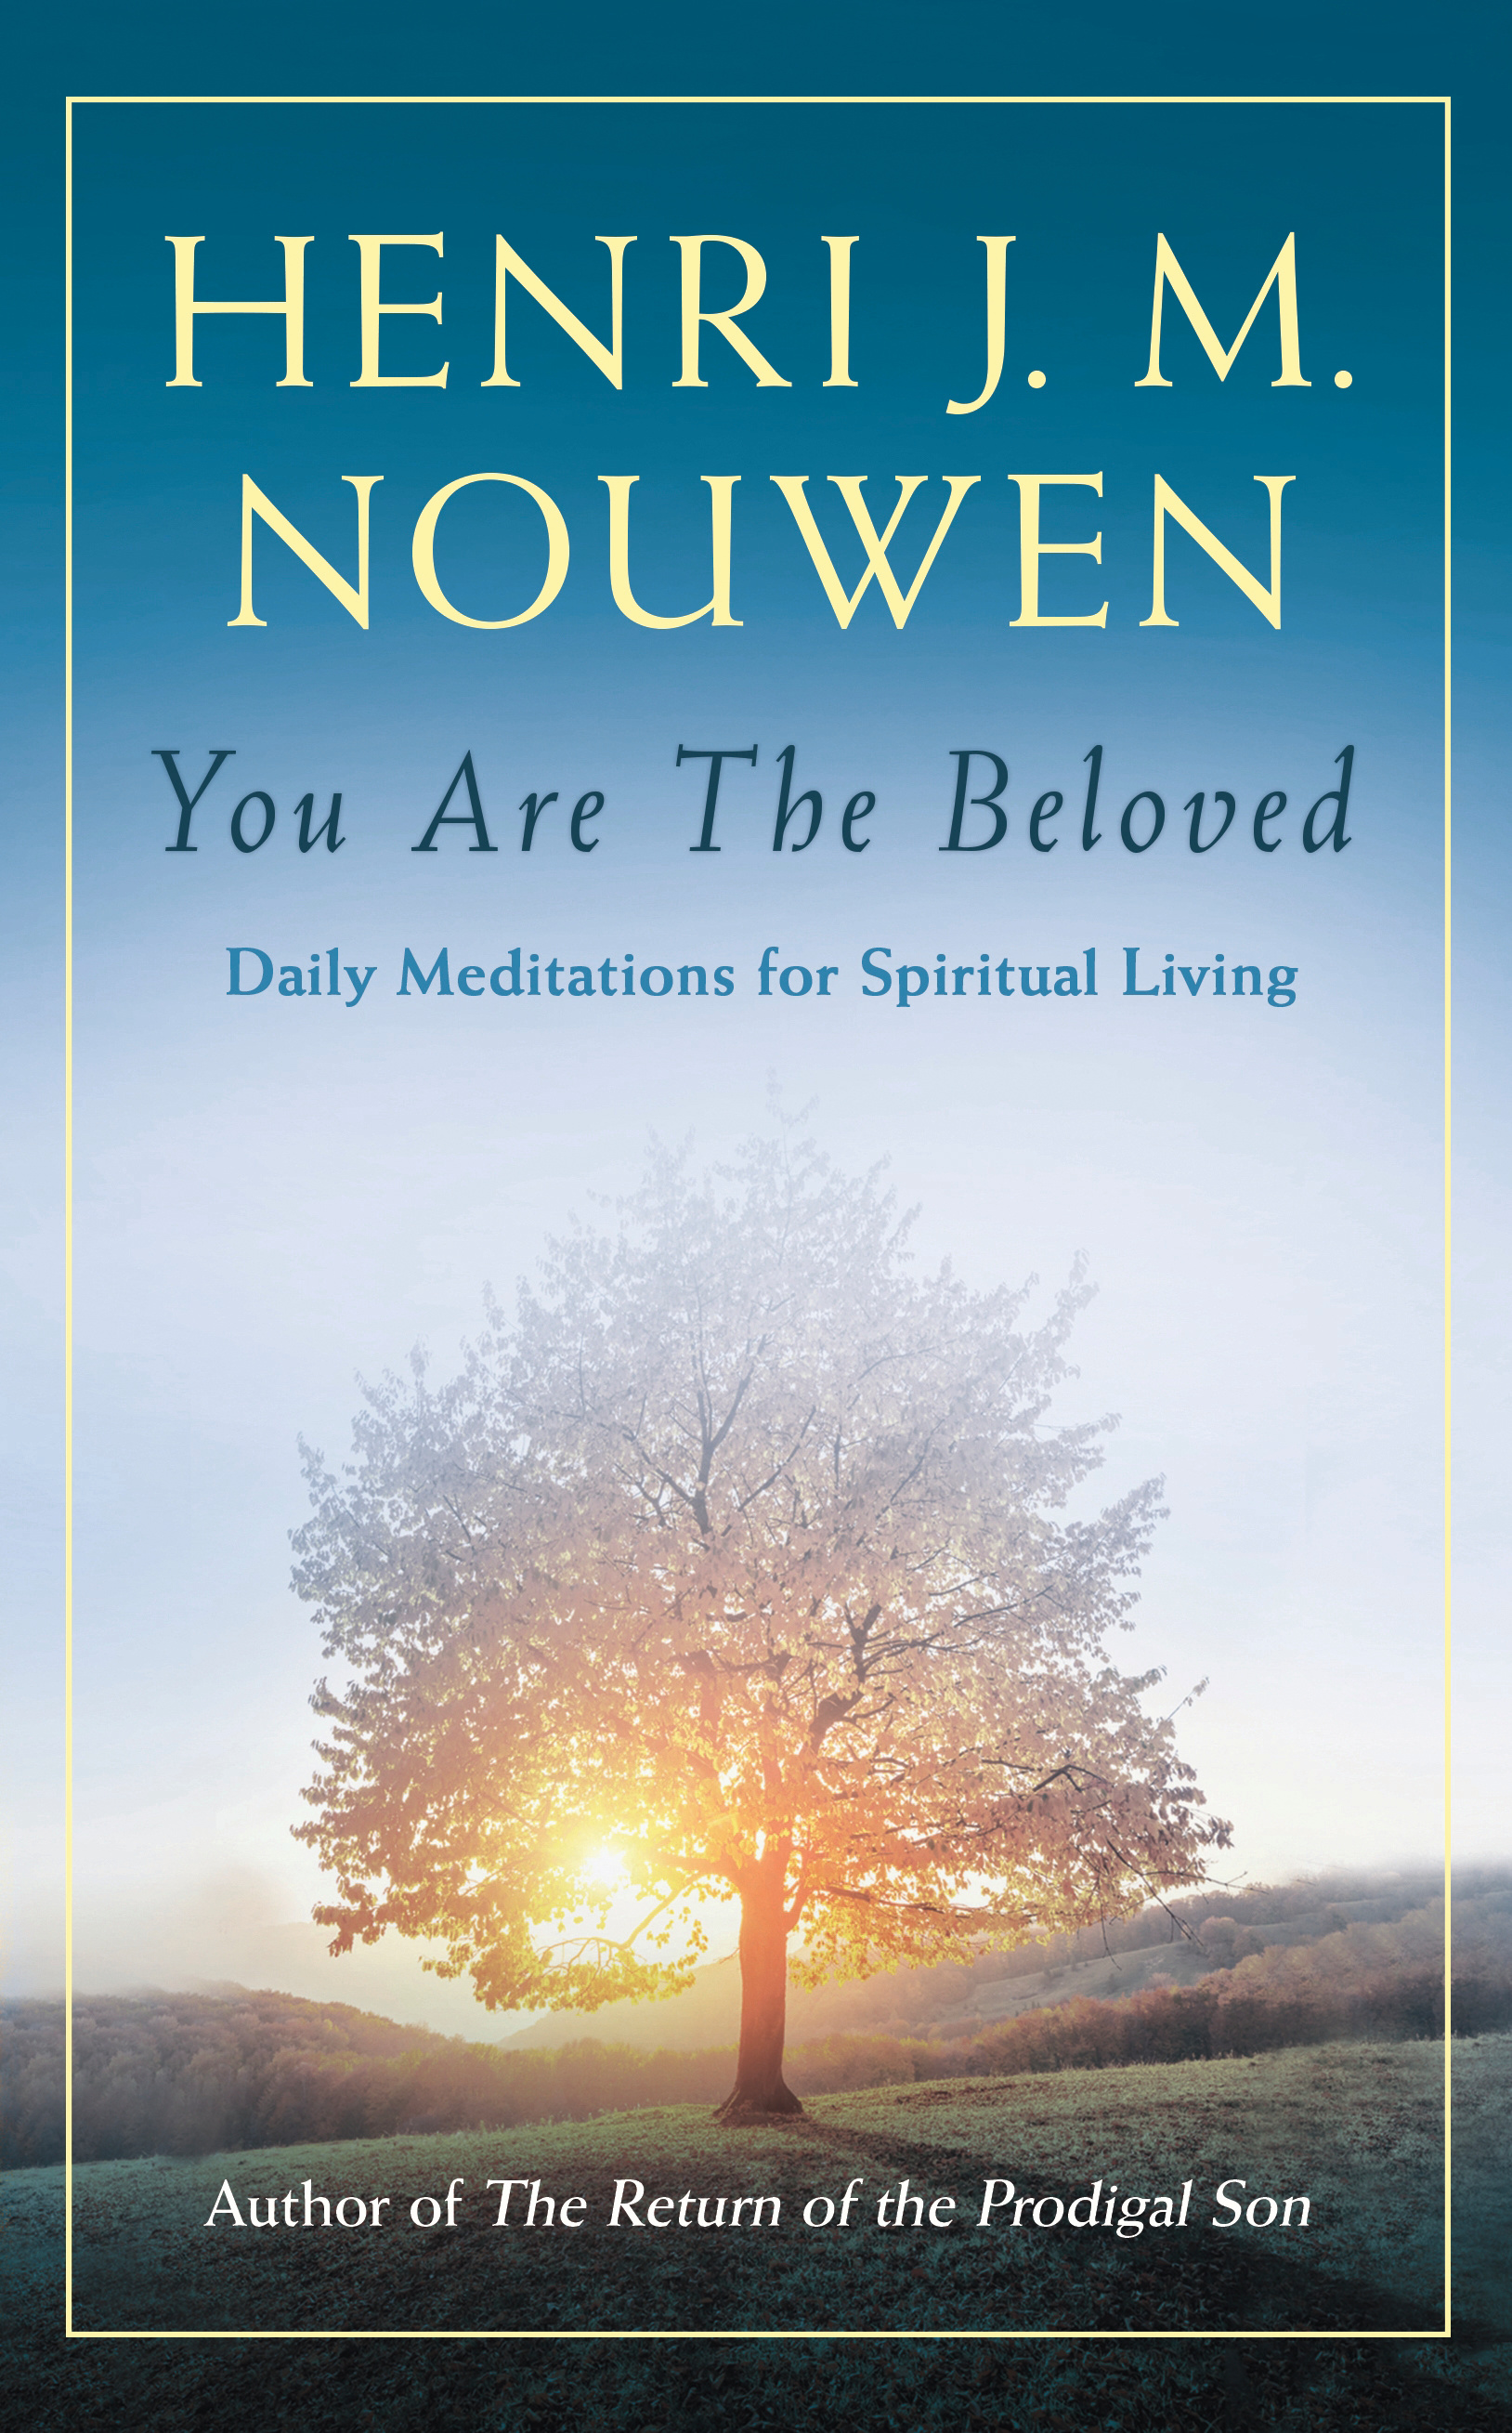 You are the Beloved: Daily Meditations for Spiritual Living